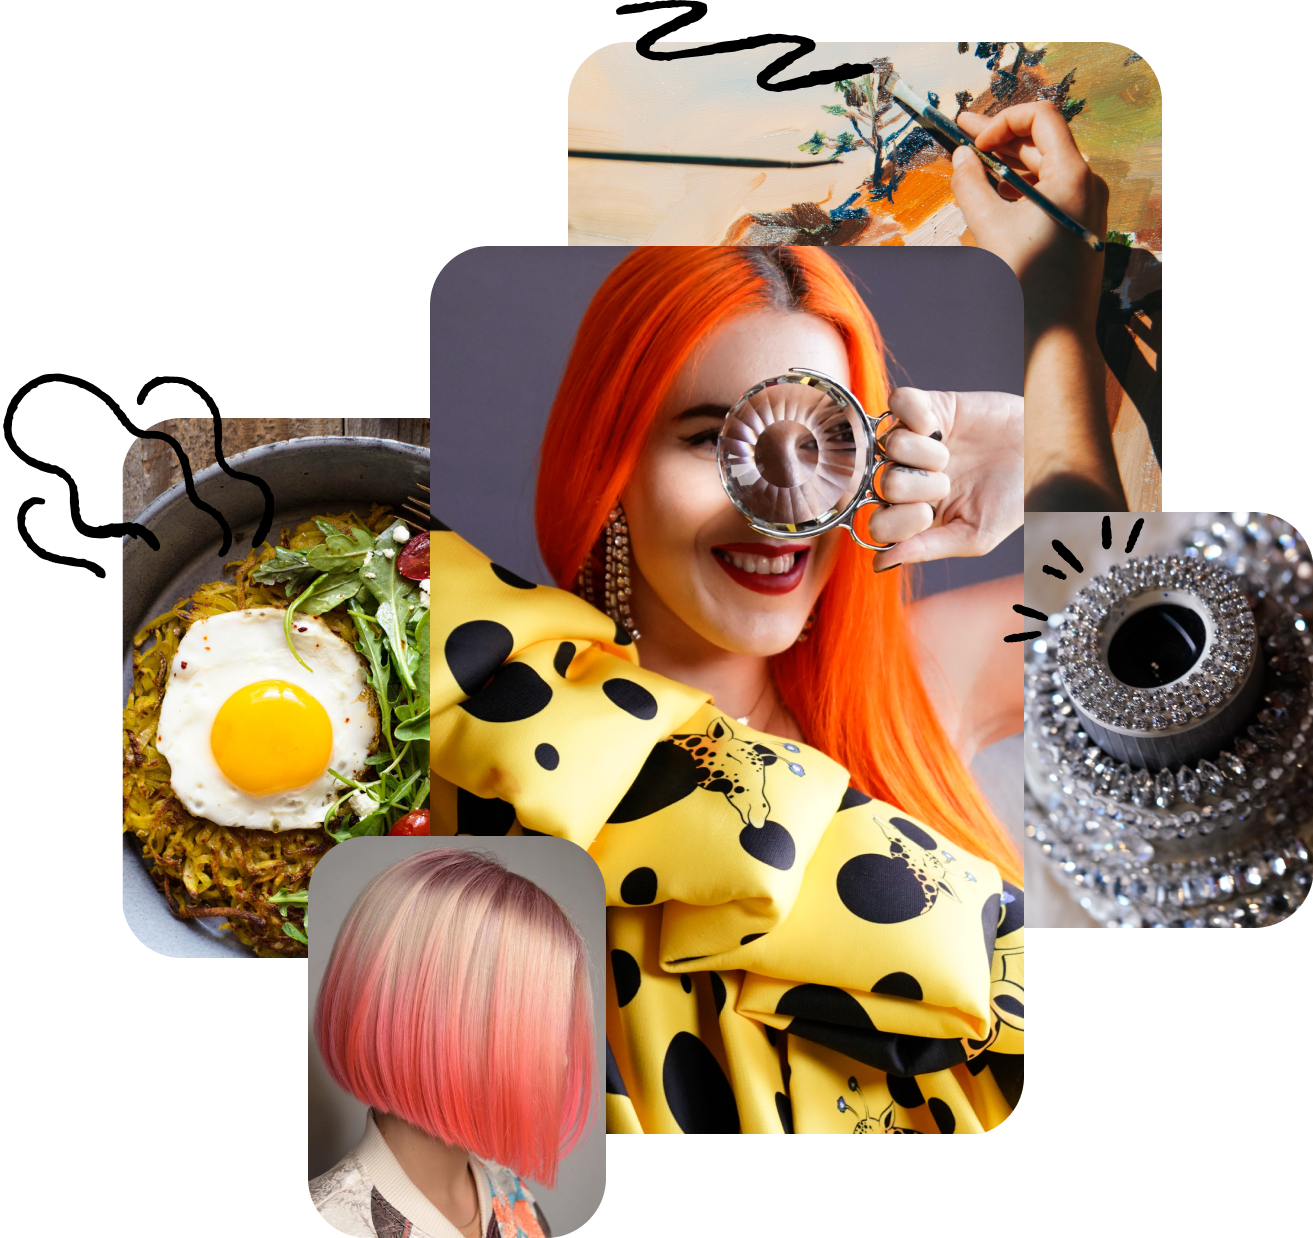 A variety of images from different creators: A homecooked meal, hot pink hairstyles, a red-haired lady in a giraffe dress, a bedazzled camera.